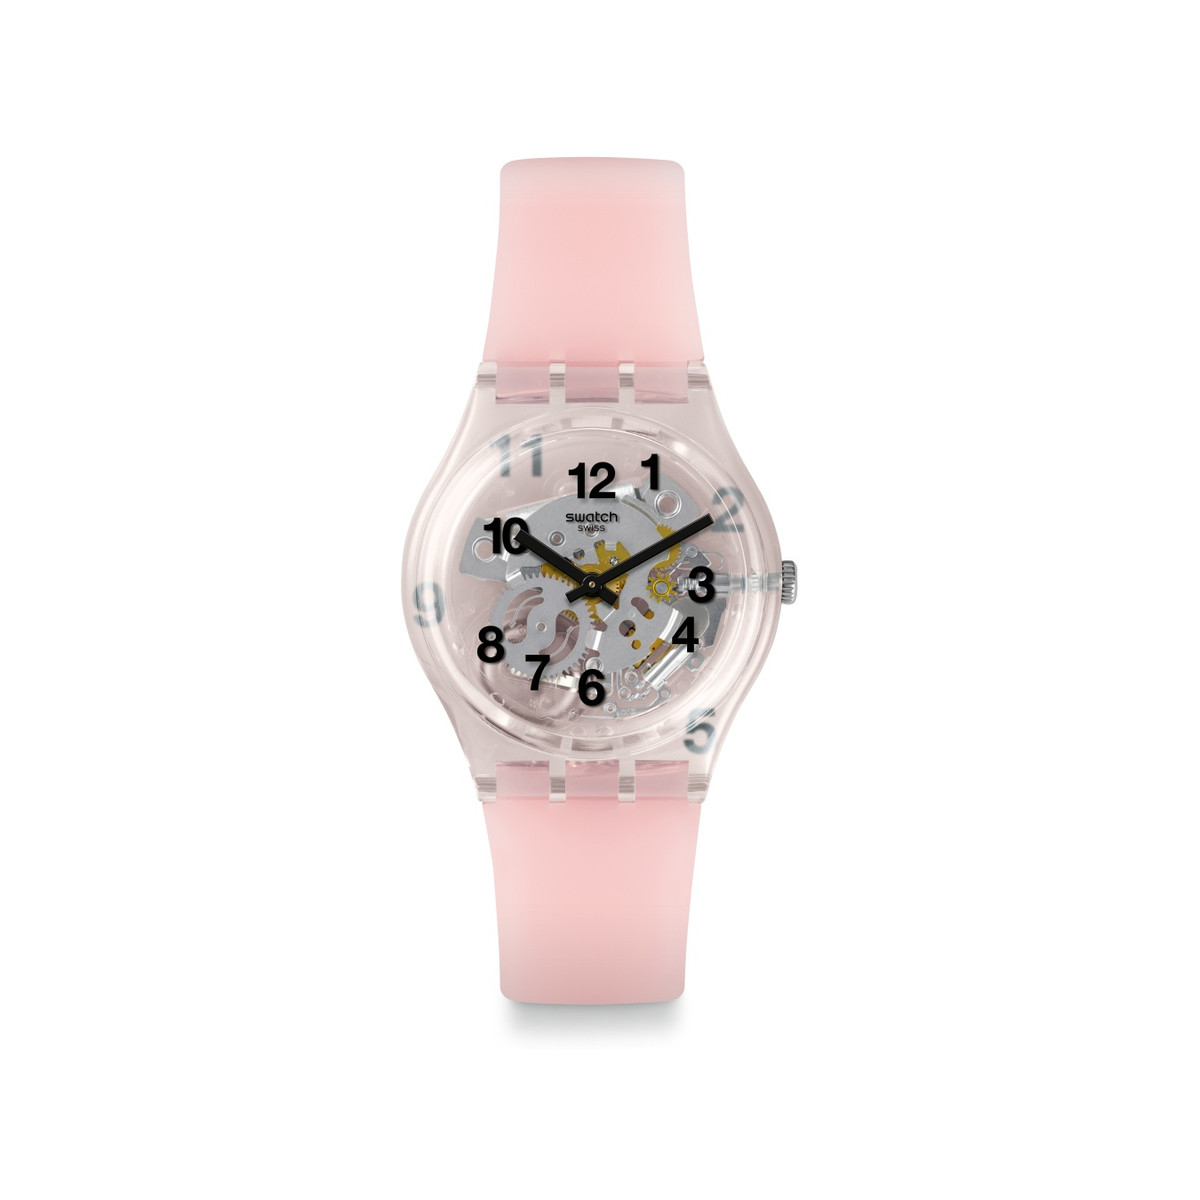 Montre Swatch femme silicone rose - vue 1